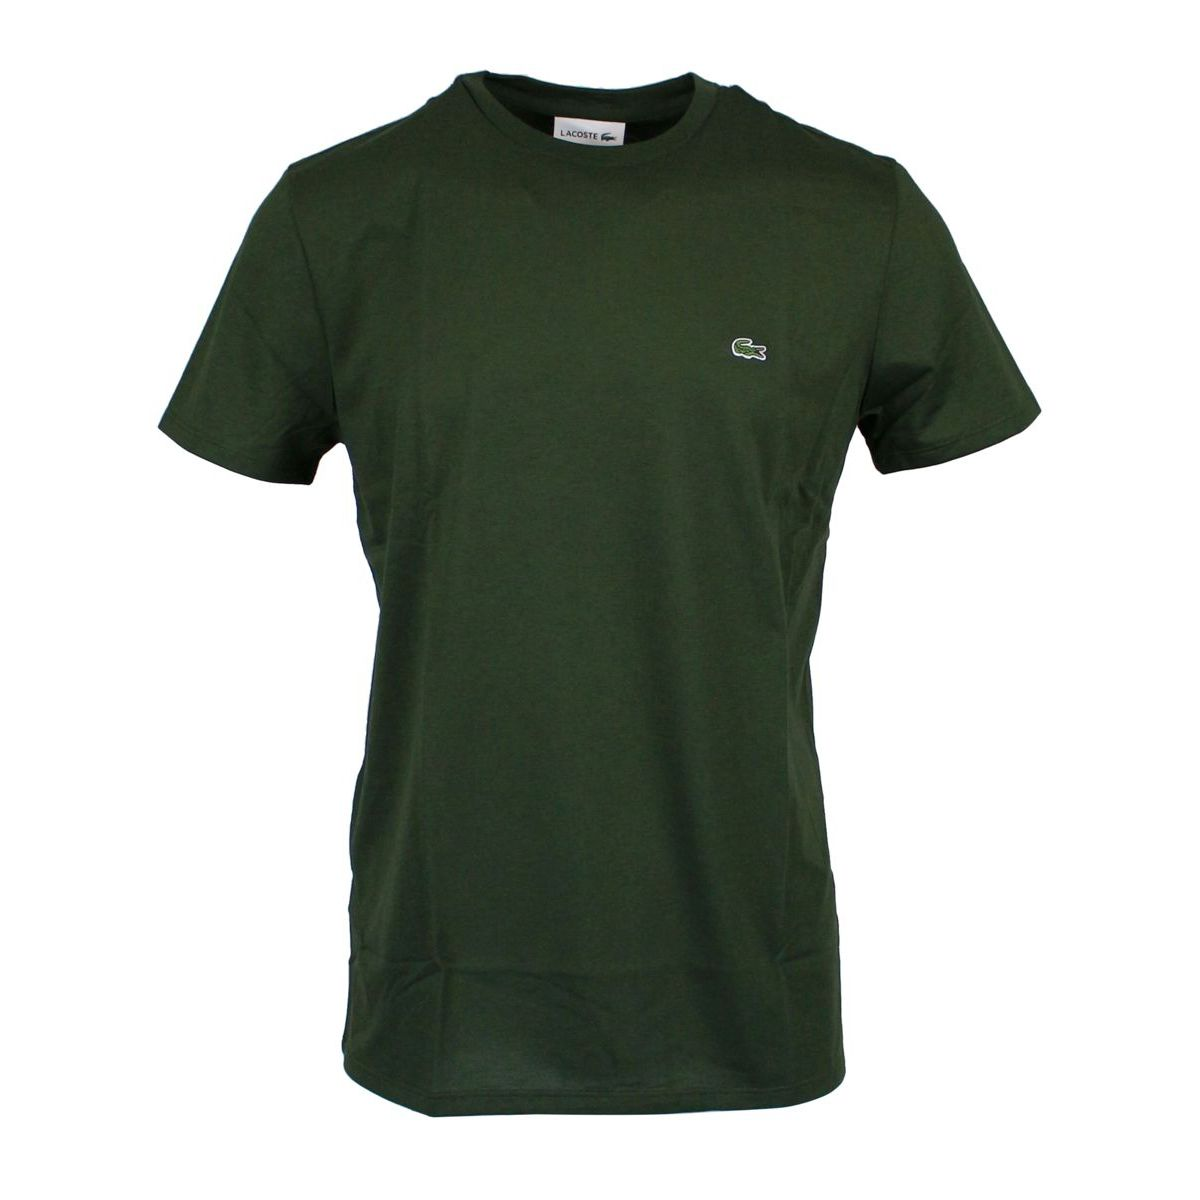 Crew-neck t-shirt with logo embroidery Military Lacoste